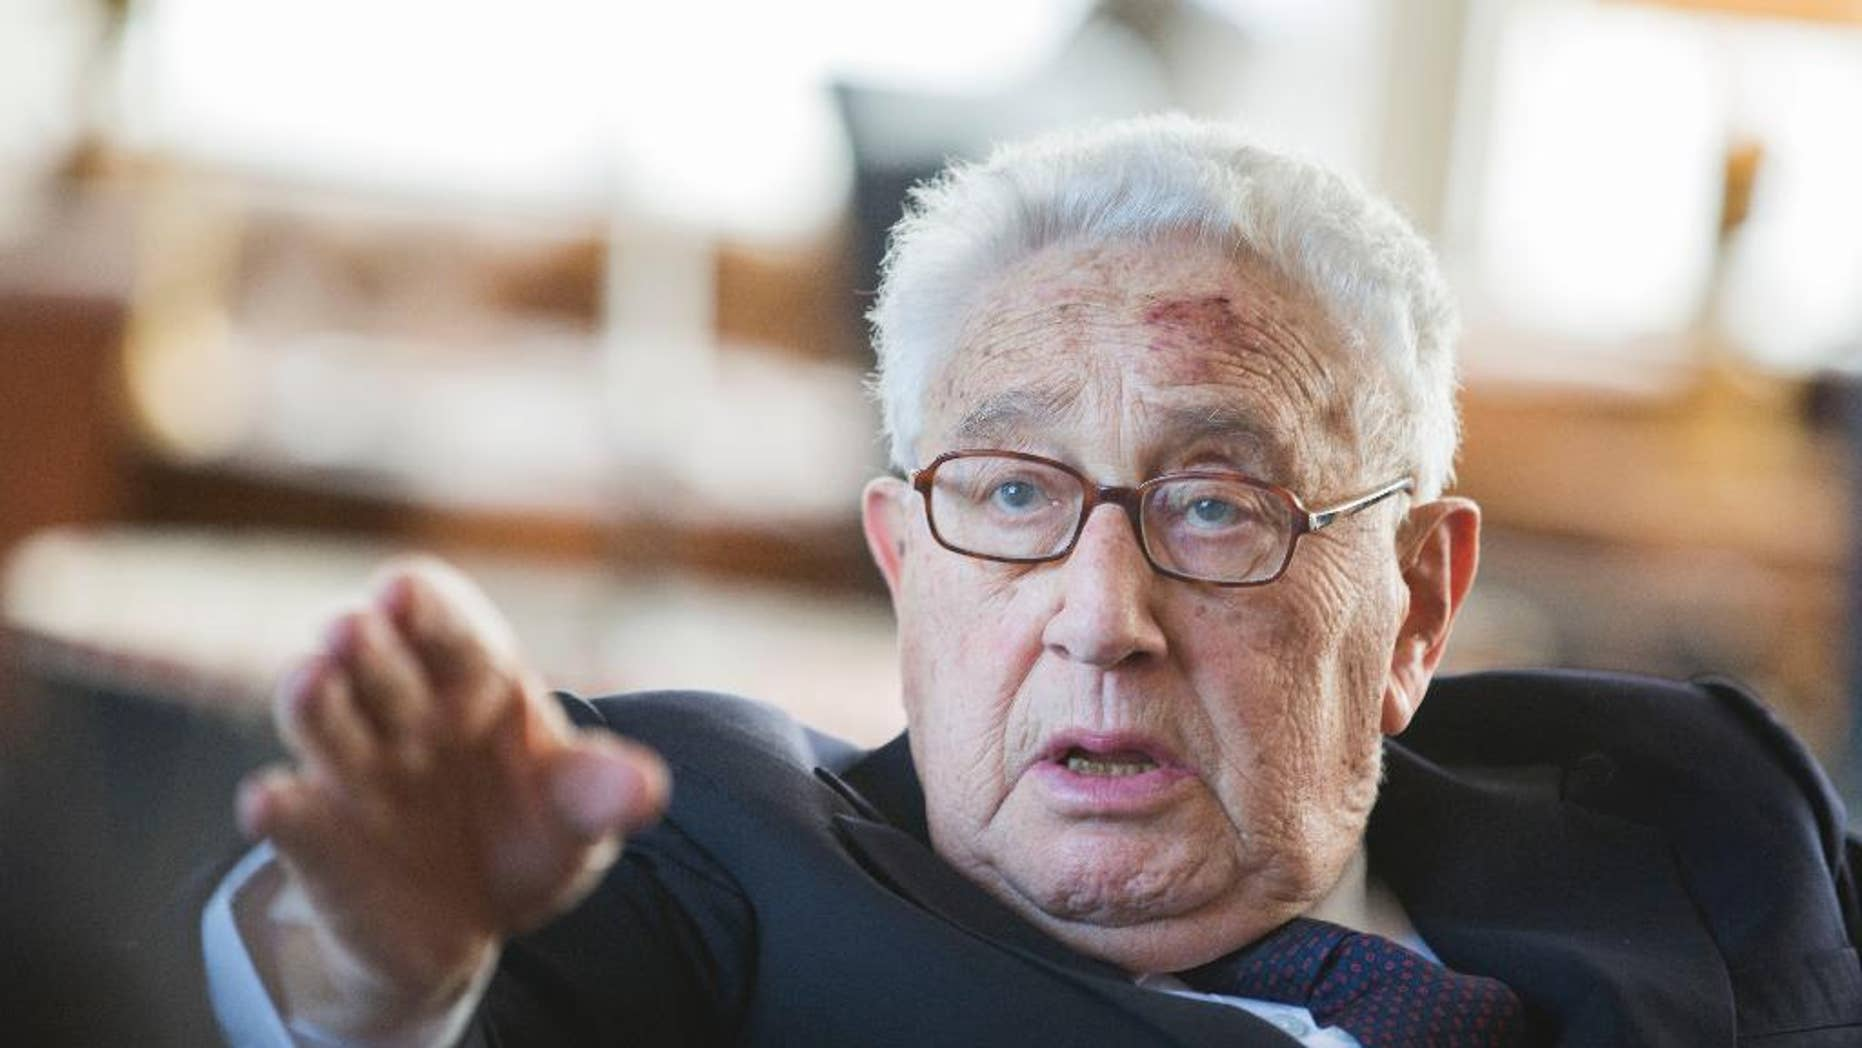 FILE - In a June 11, 2013 file photo, former US Secretary of State Henry Kissinger gestures during a birthday reception for his 90th birthday in Berlin, Germany. According to declassified government documents posted online Wednesday, Oct. 1, 2014, Kissinger ordered contingency plans drawn up nearly 40 years ago to attack Cuba, incensed over the small island's deployment of troops to Angola. (AP Photo/Gero Breloer, Pool)